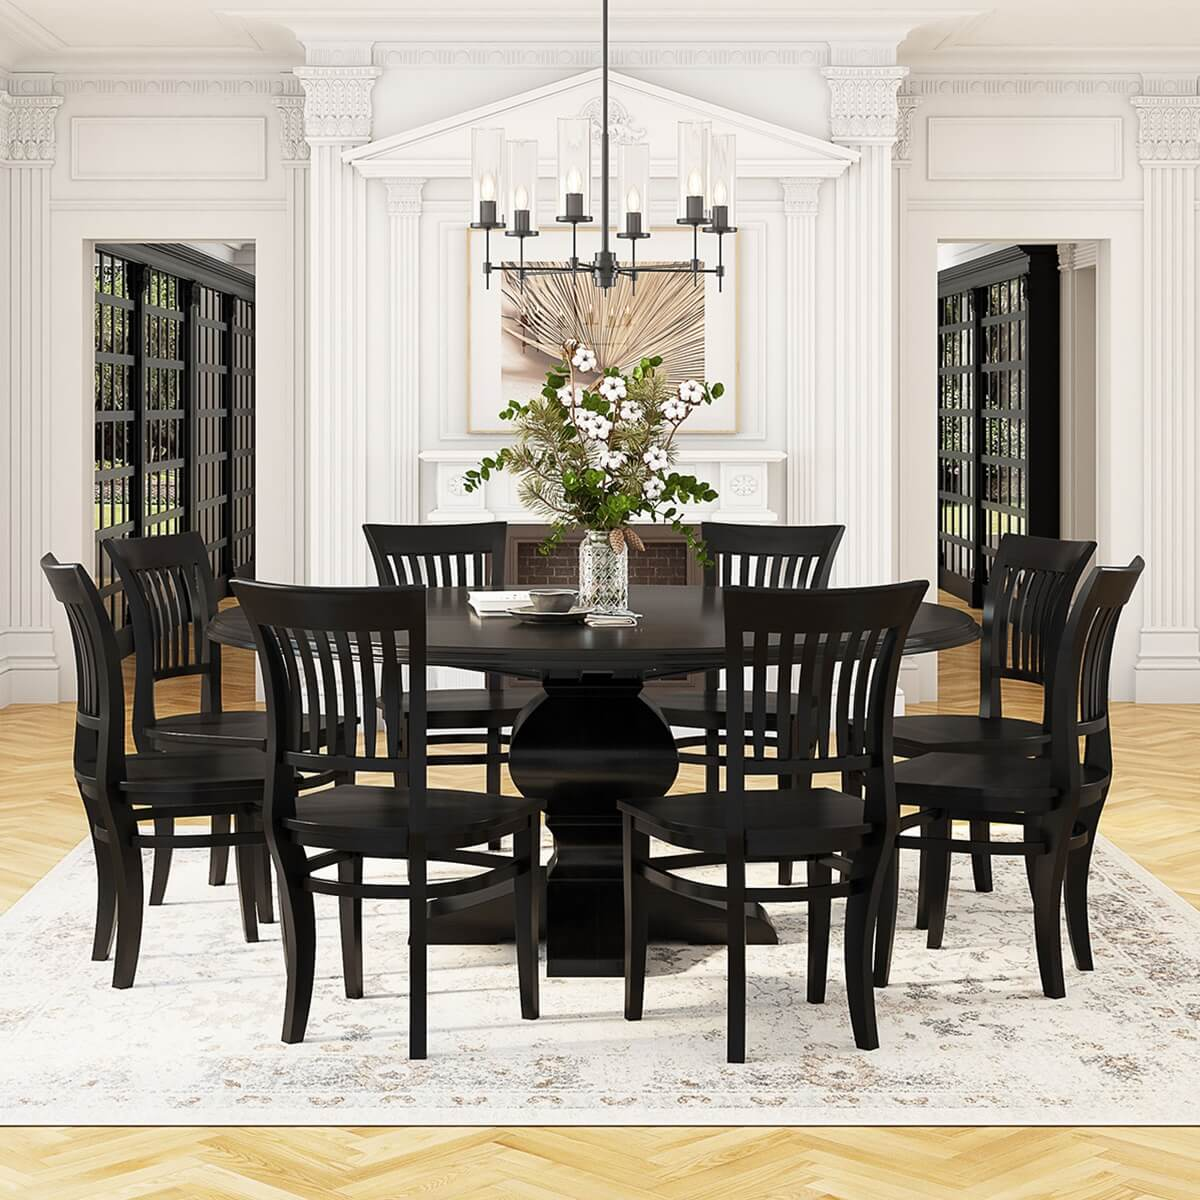 Sierra Nevada Large Round Rustic Solid Wood Dining Table Chair Set